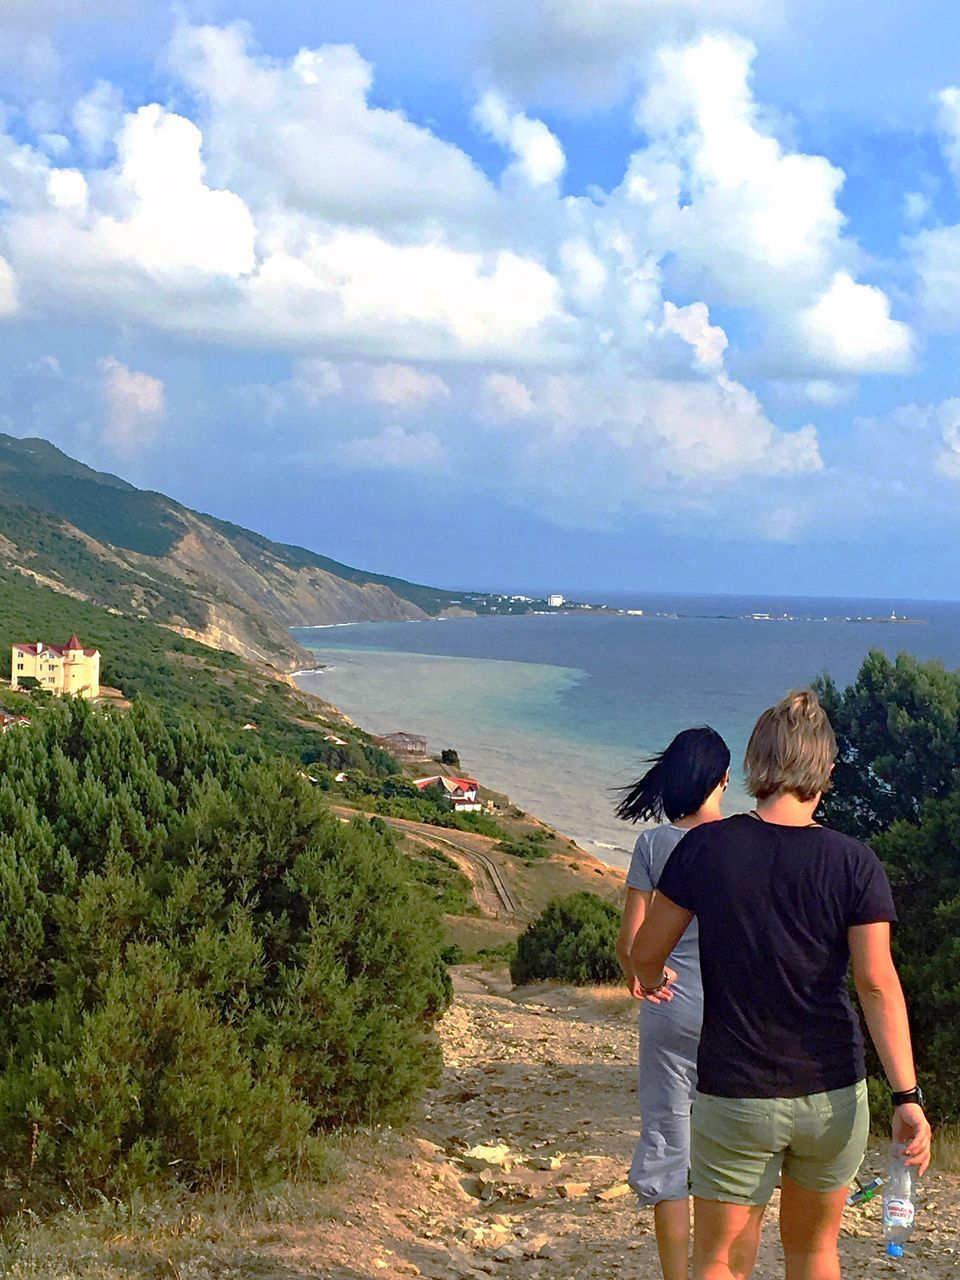 rear view, sky, cloud - sky, real people, leisure activity, water, lifestyles, beauty in nature, scenics - nature, mountain, men, day, nature, people, togetherness, land, plant, women, adult, outdoors, couple - relationship, looking at view